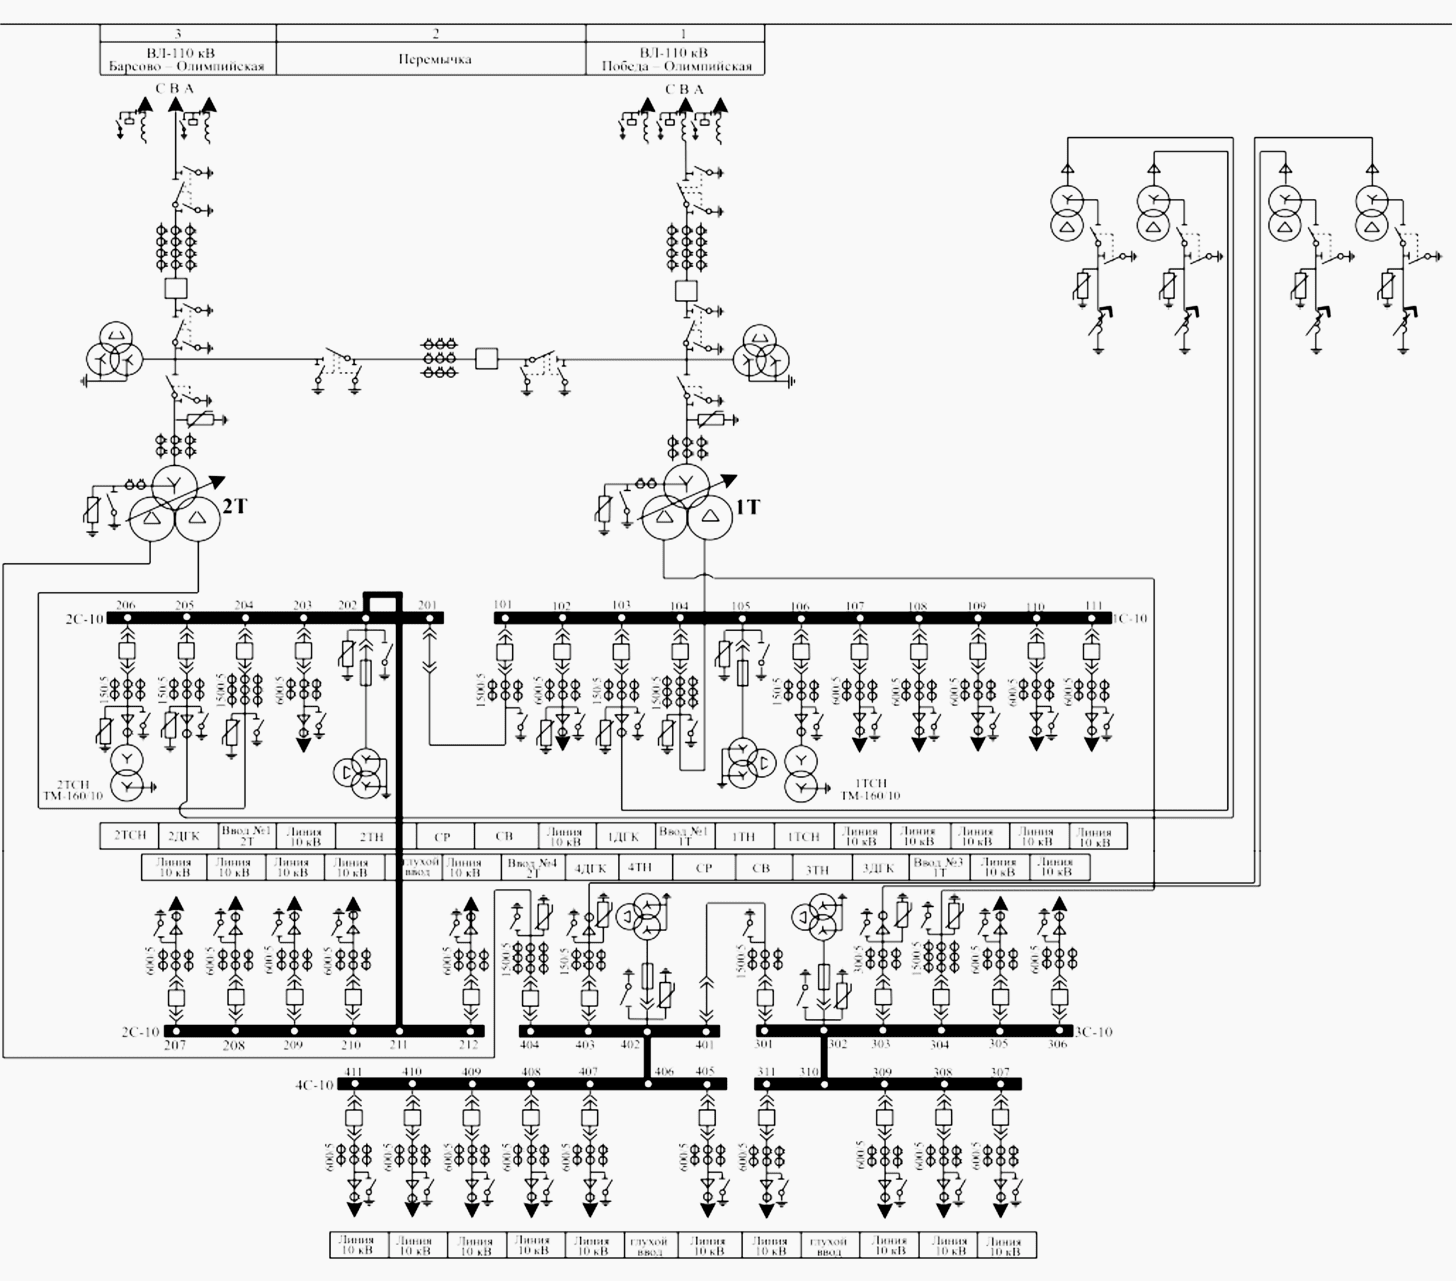 single line diagram 110 kv olympic substation?quality\\\\\\\\\\\\\\\\\\\\\\\\\\\\\\\\\\\\\\\\\\\\\\\\\\\\\\\\\\\\\\\\\\\\\\\\\\\\\\\\\\\\\\\\\\\\\\\\\\\\\\\\\\\\\\\\\\\\\\\\\\\\\\\\\\\\\\\\\\\\\\\\\\\\\\\\\\\\\\\\\\\\\\\\\\\\\\\\\\\\\\\\\\\\\\\\\\\\\\\\\\\\\\\\\\\\\\\\\\\\\\\\\\\\\\\\\\\\\\\\\\\\\\\\\\\\\\\=80\\\\\\\\\\\\\\\\\\\\\\\\\\\\\\\\\\\\\\\\\\\\\\\\\\\\\\\\\\\\\\\\\\\\\\\\\\\\\\\\\\\\\\\\\\\\\\\\\\\\\\\\\\\\\\\\\\\\\\\\\\\\\\\\\\\\\\\\\\\\\\\\\\\\\\\\\\\\\\\\\\\\\\\\\\\\\\\\\\\\\\\\\\\\\\\\\\\\\\\\\\\\\\\\\\\\\\\\\\\\\\\\\\\\\\\\\\\\\\\\\\\\\\\\\\\\\\\&strip\\\\\\\\\\\\\\\\\\\\\\\\\\\\\\\\\\\\\\\\\\\\\\\\\\\\\\\\\\\\\\\\\\\\\\\\\\\\\\\\\\\\\\\\\\\\\\\\\\\\\\\\\\\\\\\\\\\\\\\\\\\\\\\\\\\\\\\\\\\\\\\\\\\\\\\\\\\\\\\\\\\\\\\\\\\\\\\\\\\\\\\\\\\\\\\\\\\\\\\\\\\\\\\\\\\\\\\\\\\\\\\\\\\\\\\\\\\\\\\\\\\\\\\\\\\\\\\=all one line electrical symbols great installation of wiring diagram \u2022